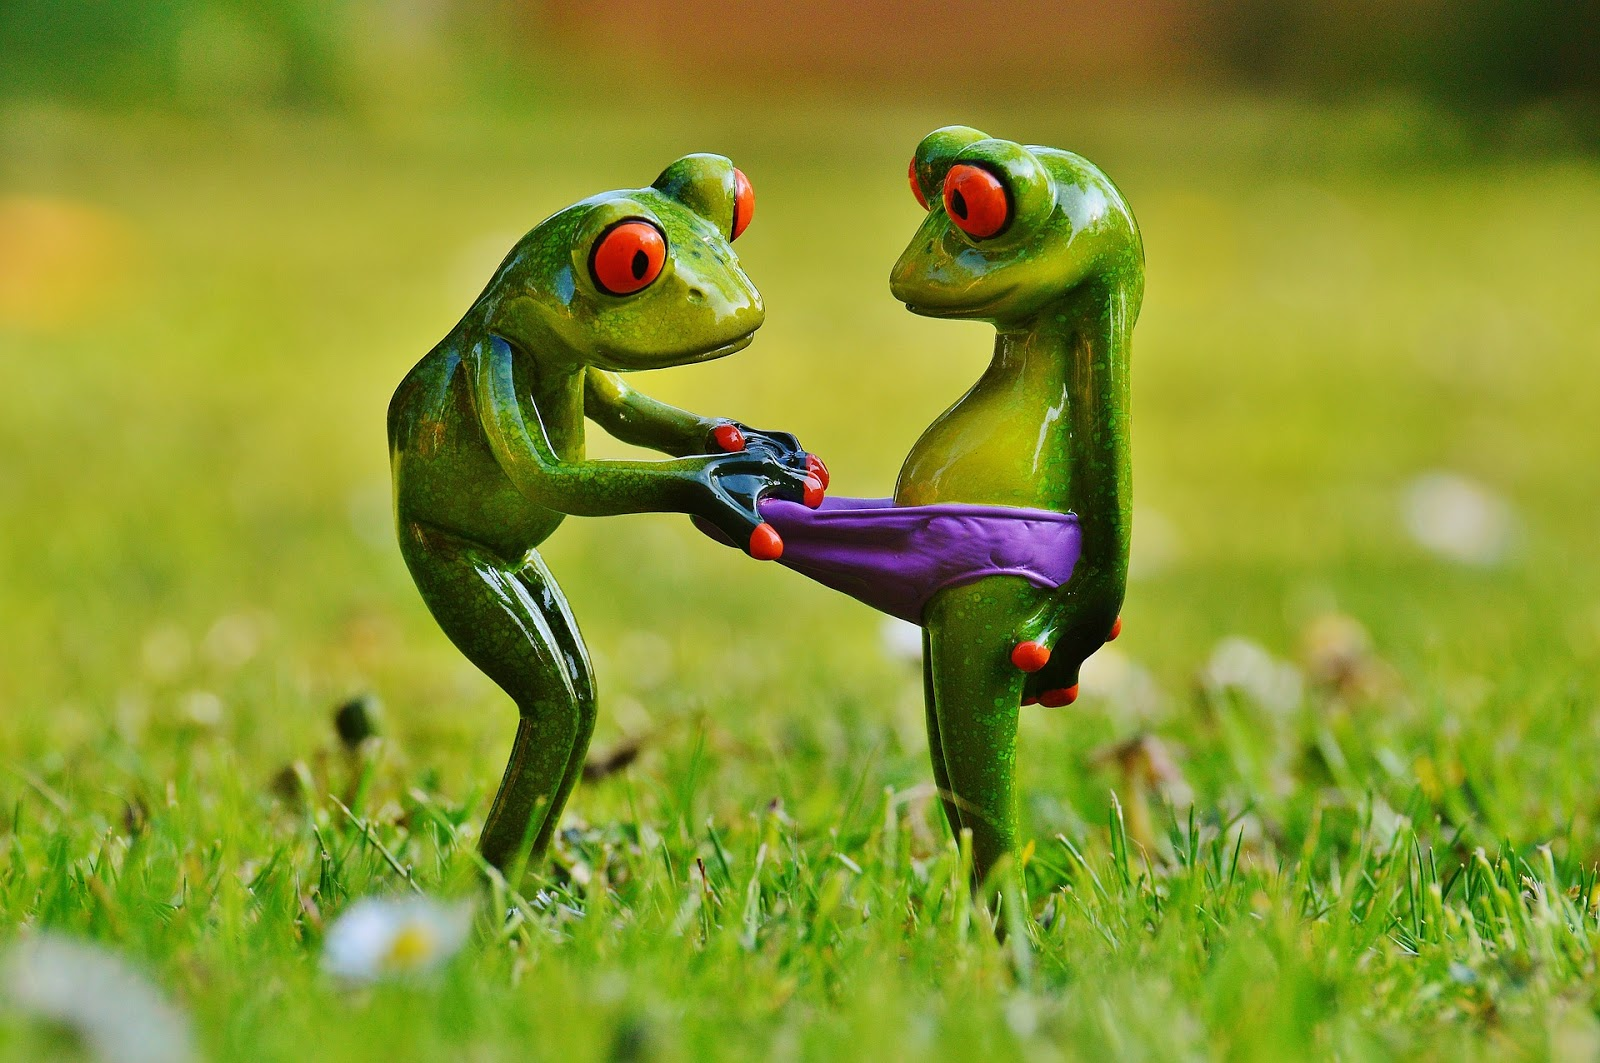 A funny picture of a frog looking at a stomach of another frog.